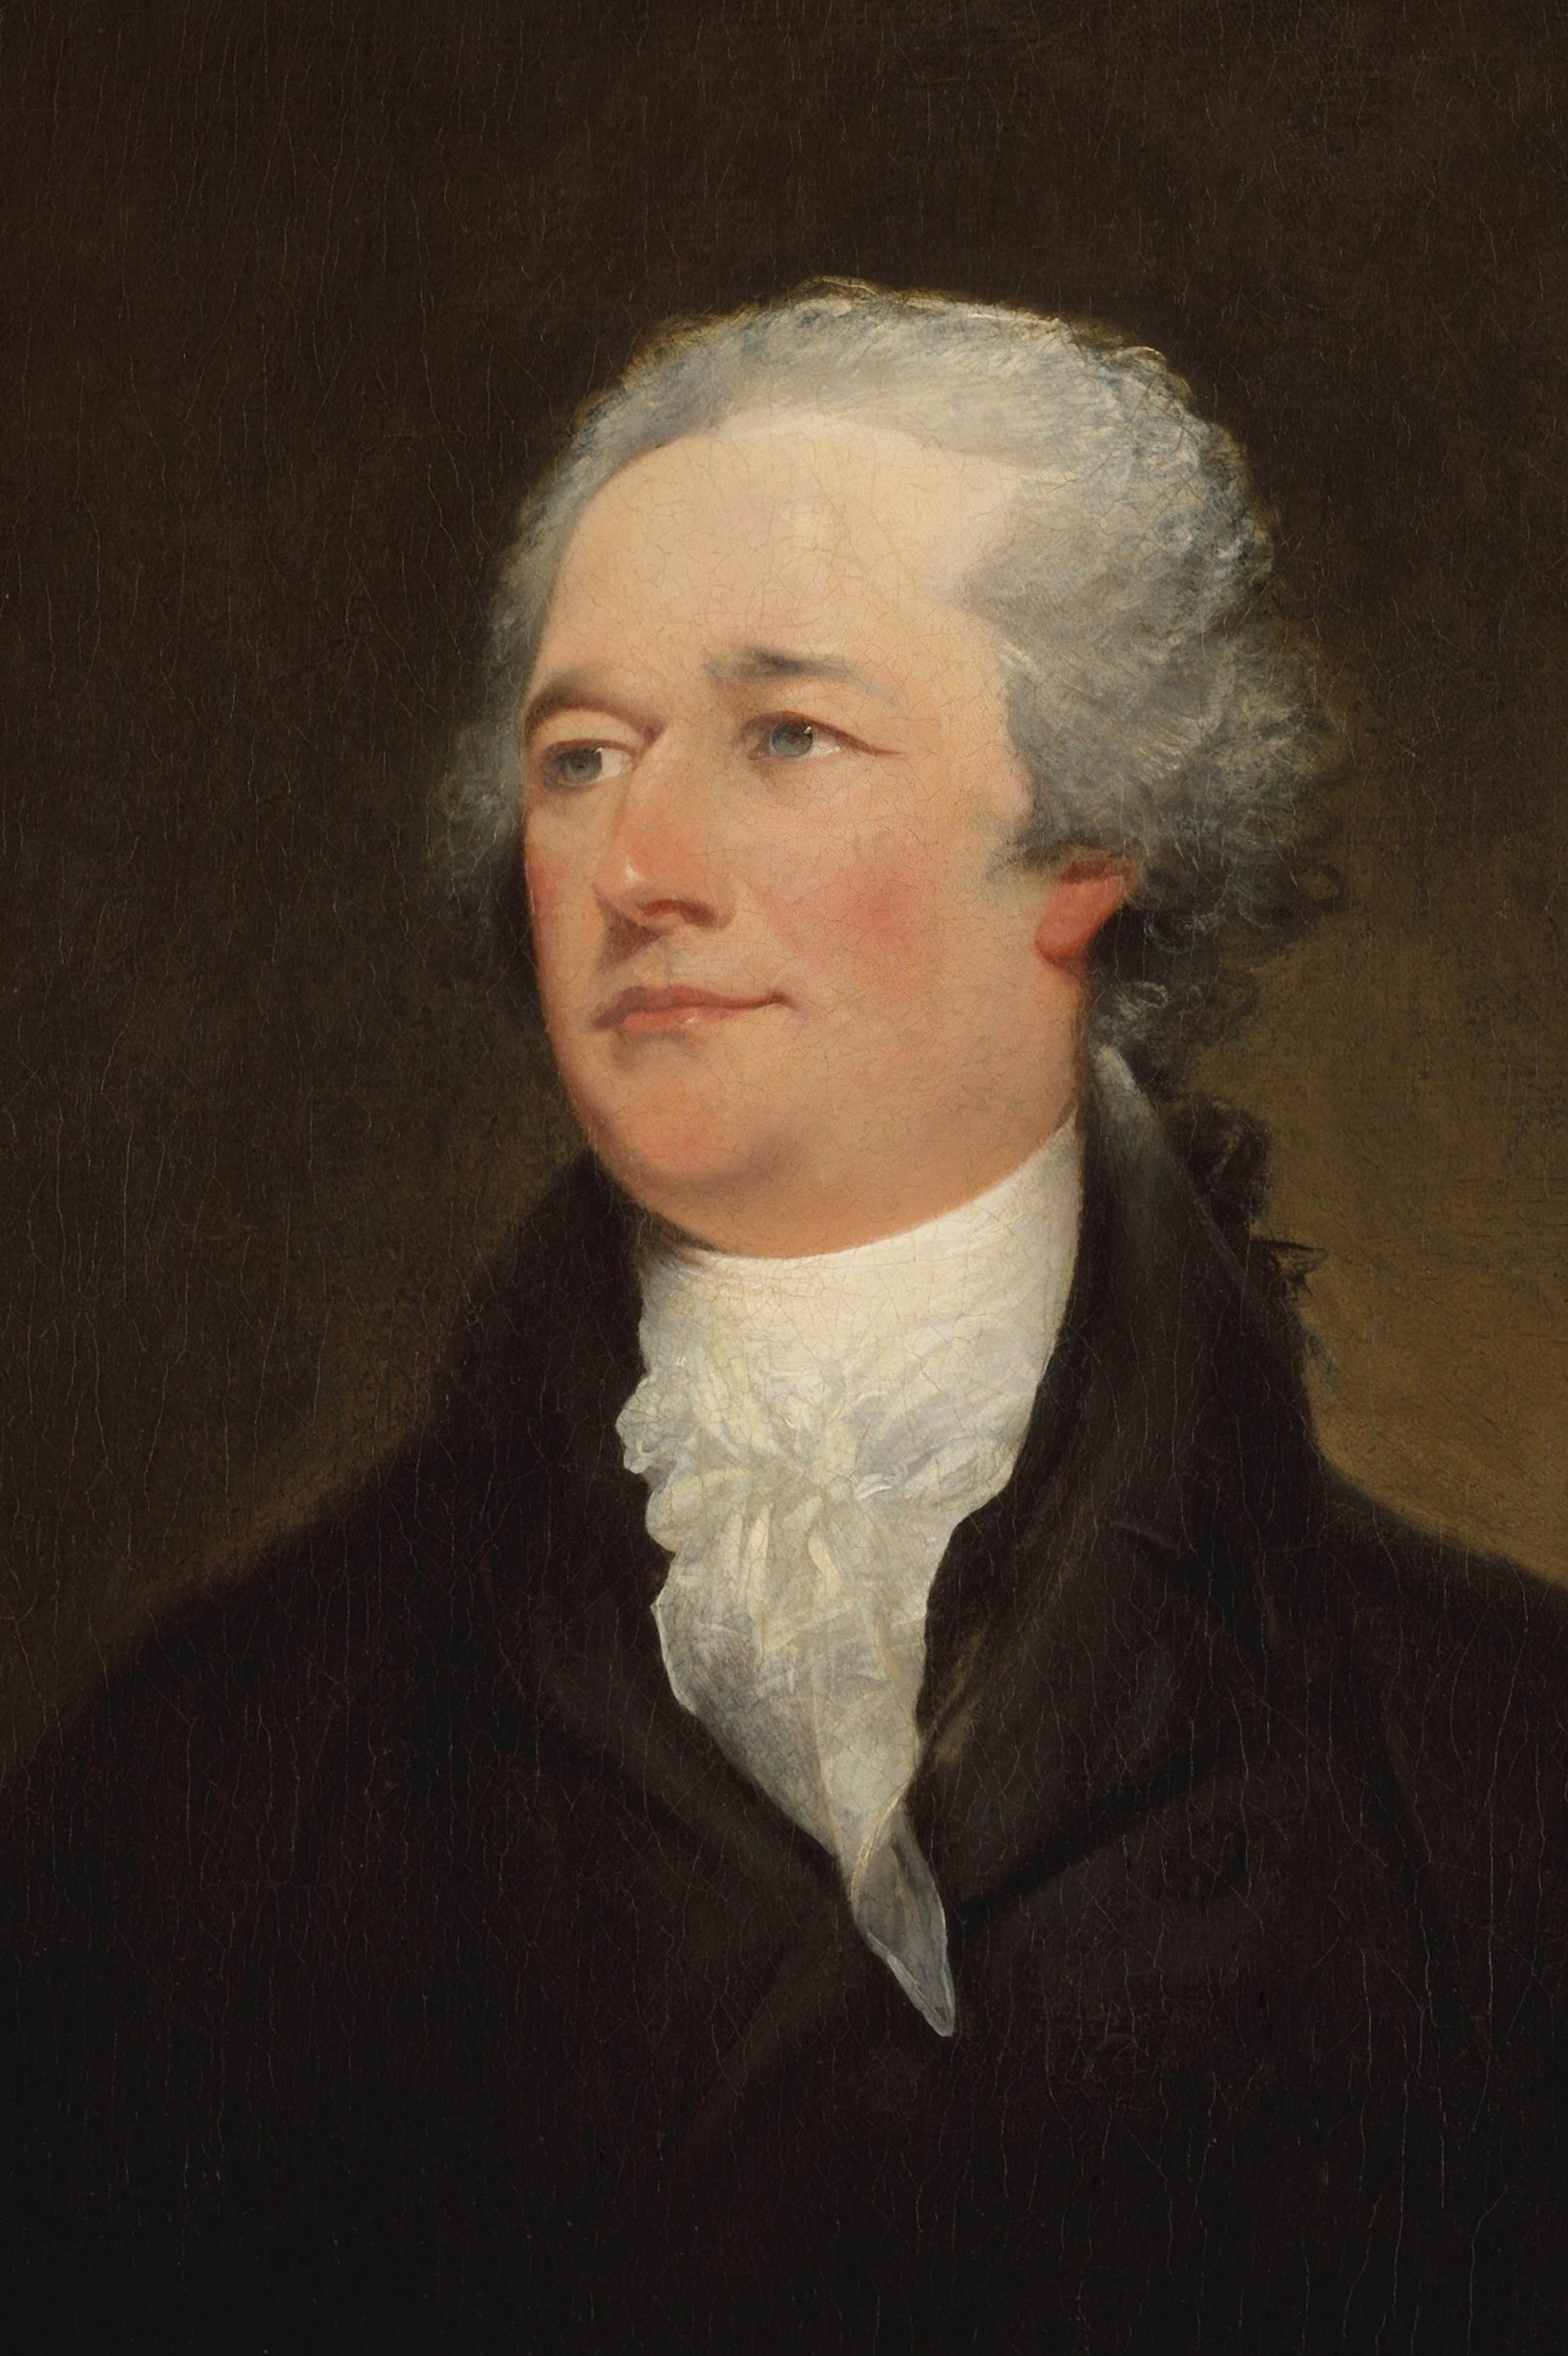 Mandatory Credit: Photo by Everett/Shutterstock (10410351a) Alexander Hamilton, by John Trumbull, 1804-06, American painting, oil on canvas. This painting is one of a series of Hamilton portraits Trumbull painted from 1804 to 1808, from Joseph Ceracchis marble sculpture of 1794.